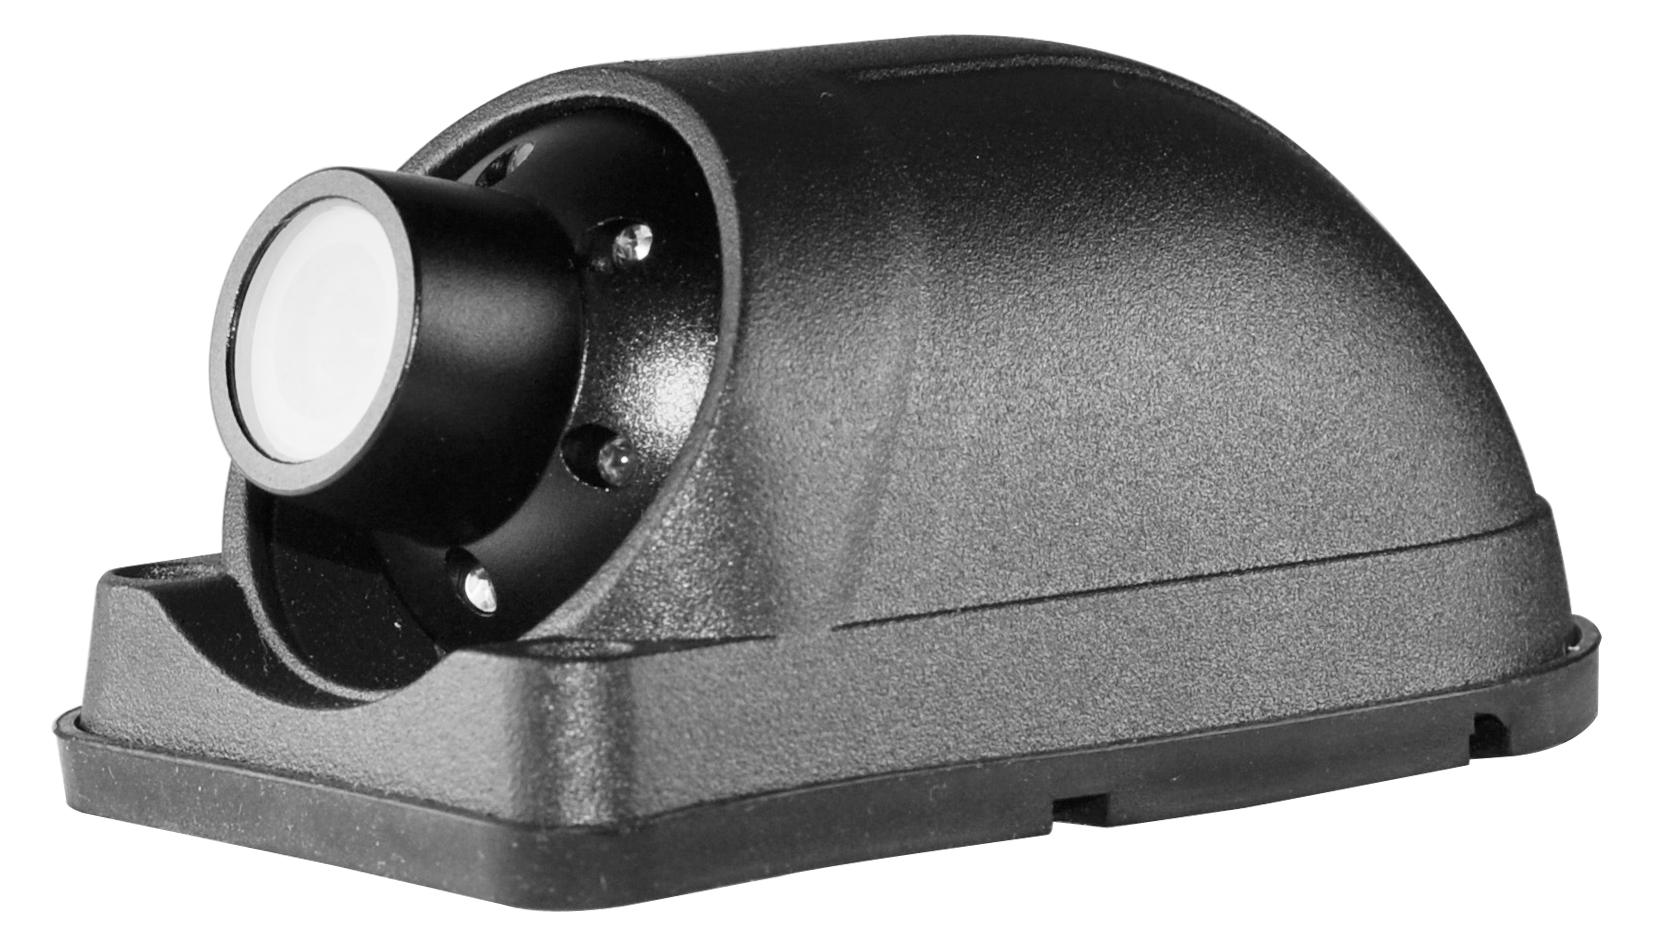 SBSA ADJUSTABLE SIDE/BLIND SPOT CAMERA